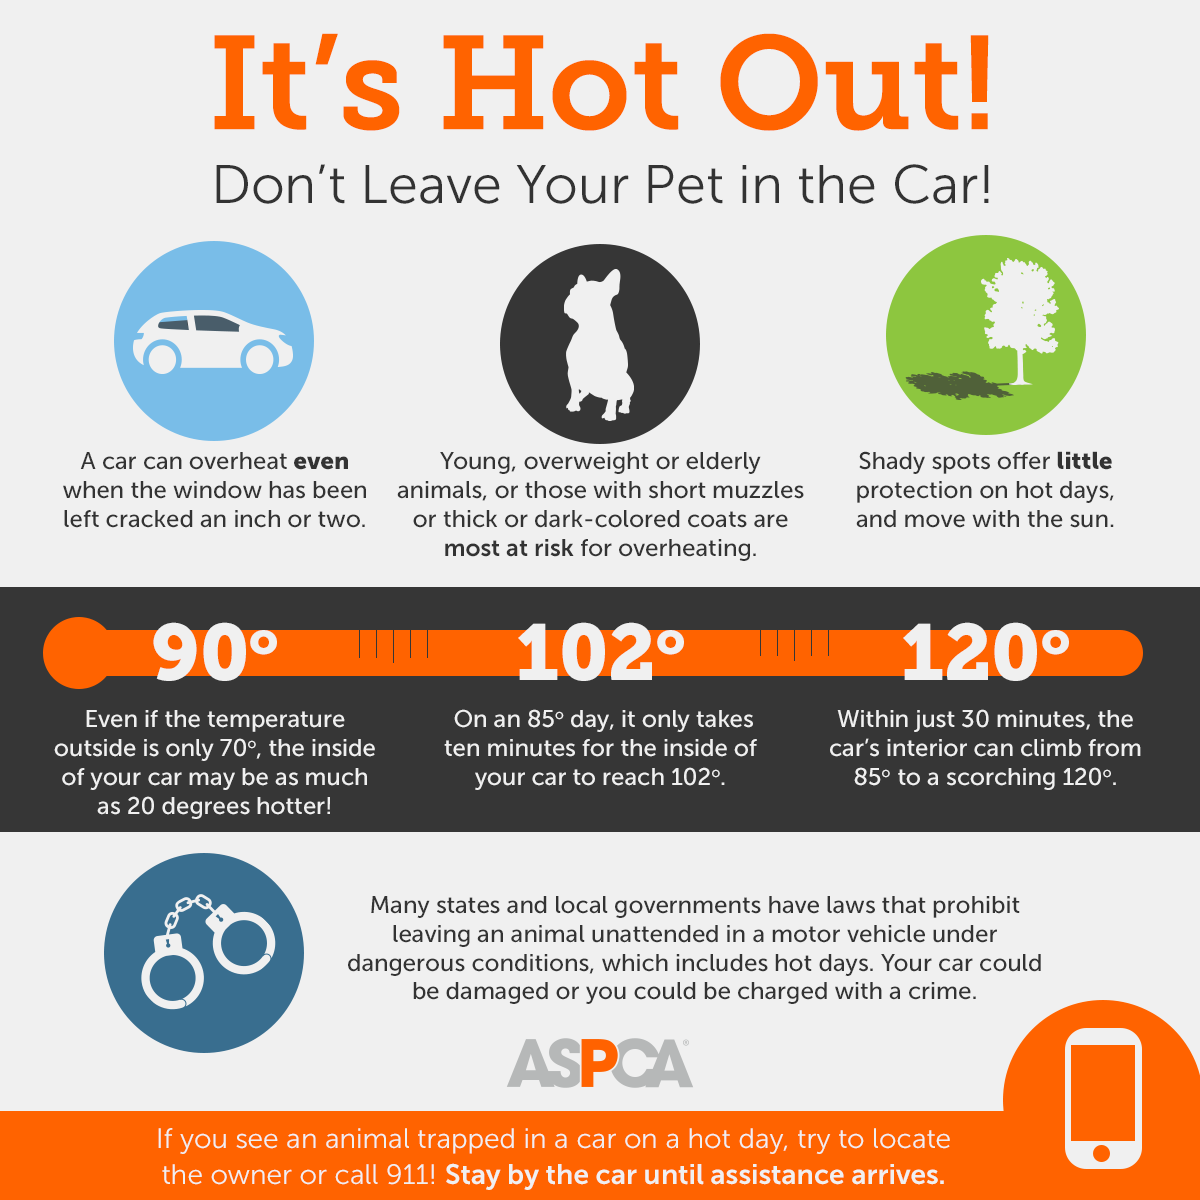 It's hot out! Don't leave your pet in the car!